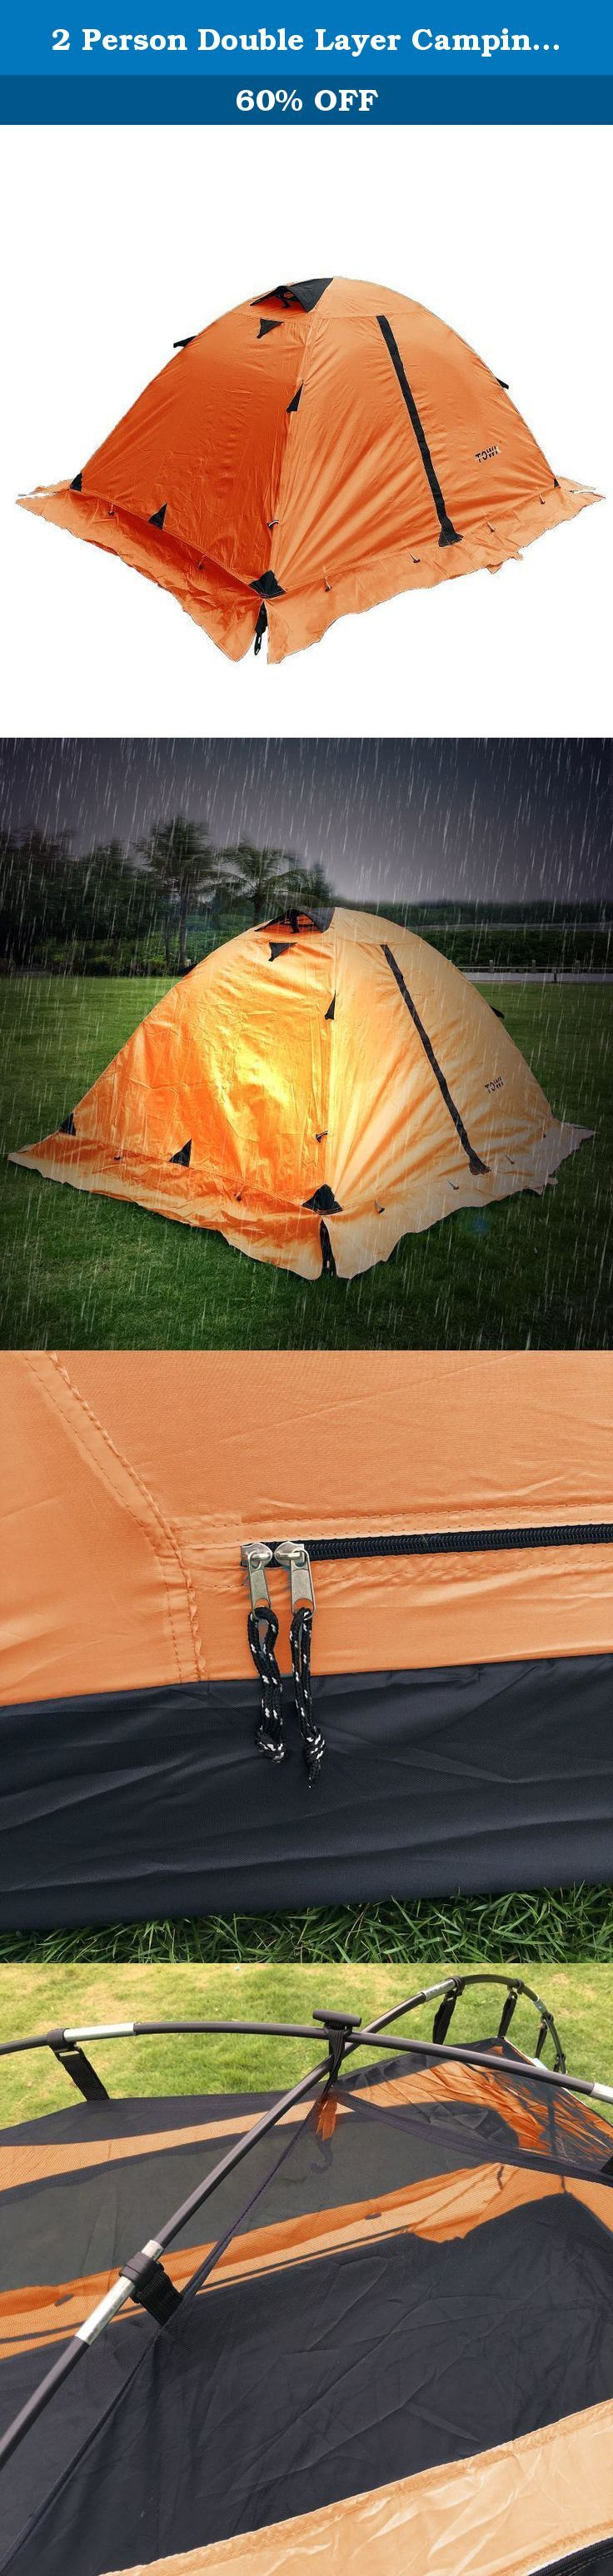 2 Person Double Layer Camping Hiking Waterproof Backpack Tent w/ Rainfly & Skirt (Orange). Easy to Set up And good for 2 person 4 season use.